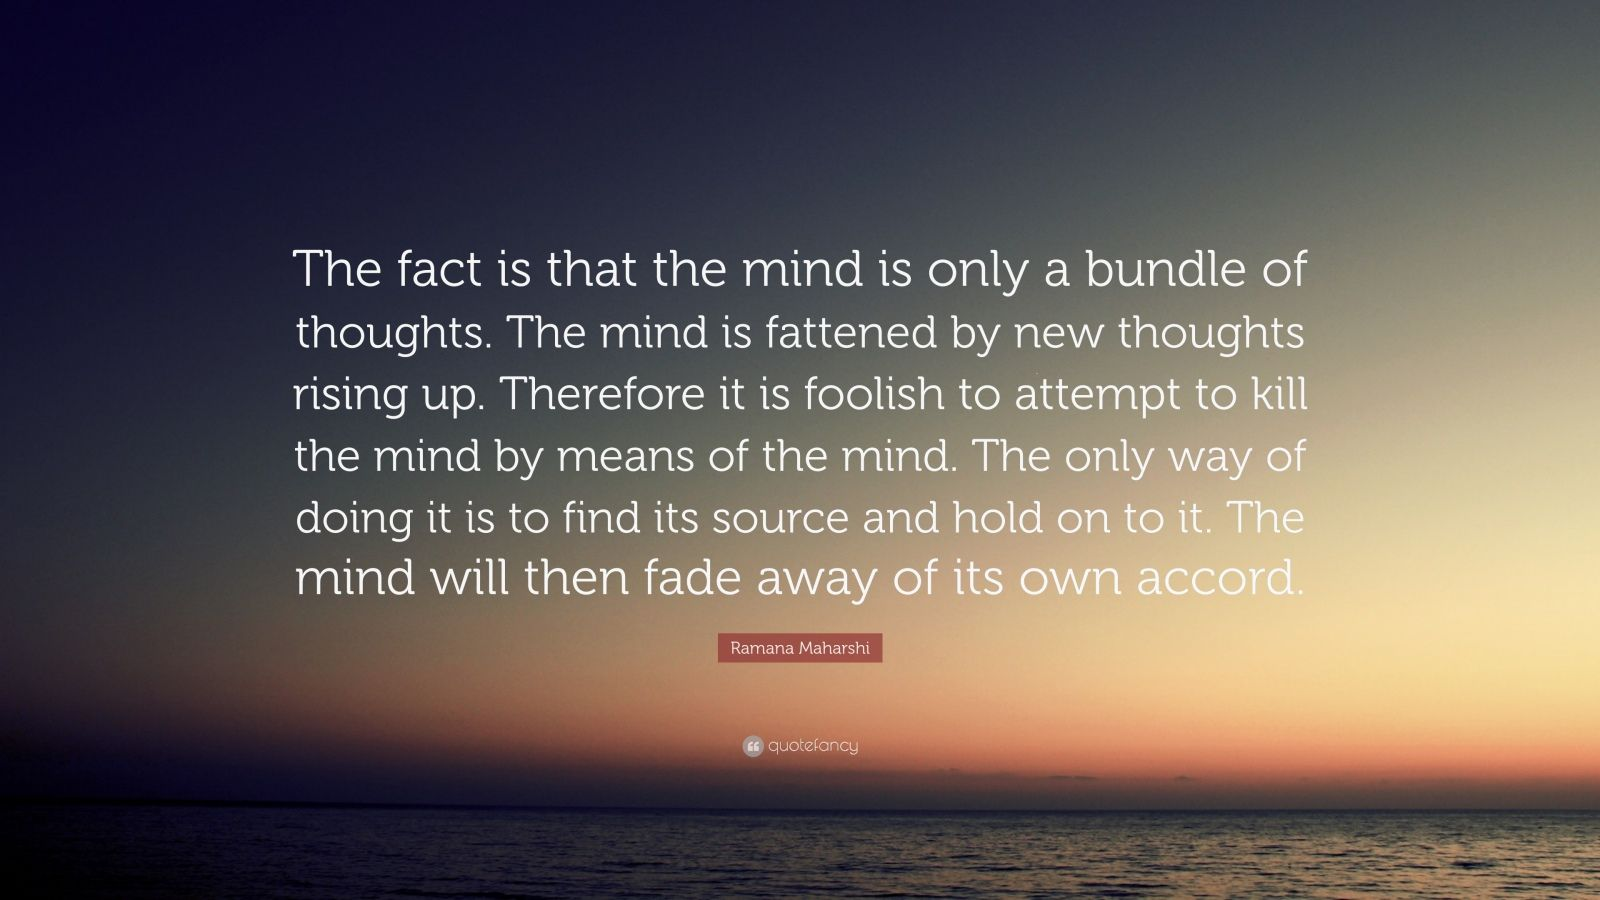 "Ramana Maharshi Quote: ""The fact is that the mind is only a bundle of thoughts. The mind is fattened by new thoughts rising up. Therefore it is foolish to attempt to kill the mind by means of the mind. The only way of doing it is to find its source and hold on to it. The mind will then fade away of its own accord."""